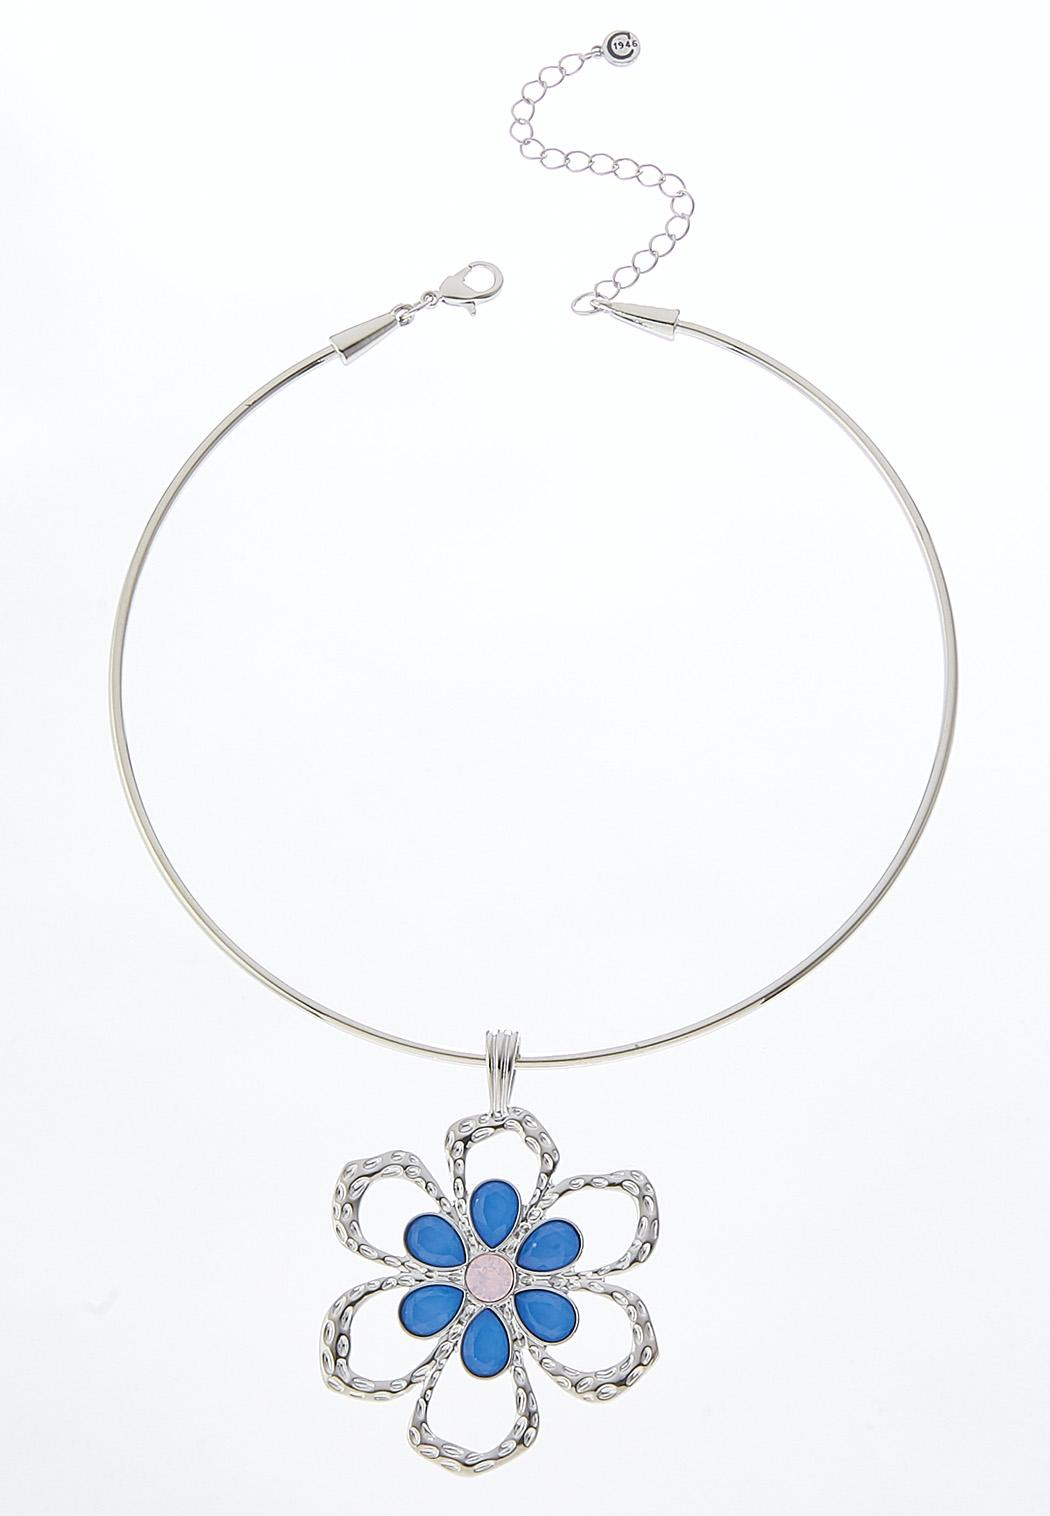 Blue And Pink Flower Pendant Wire Necklace Chokers Cato Fashions